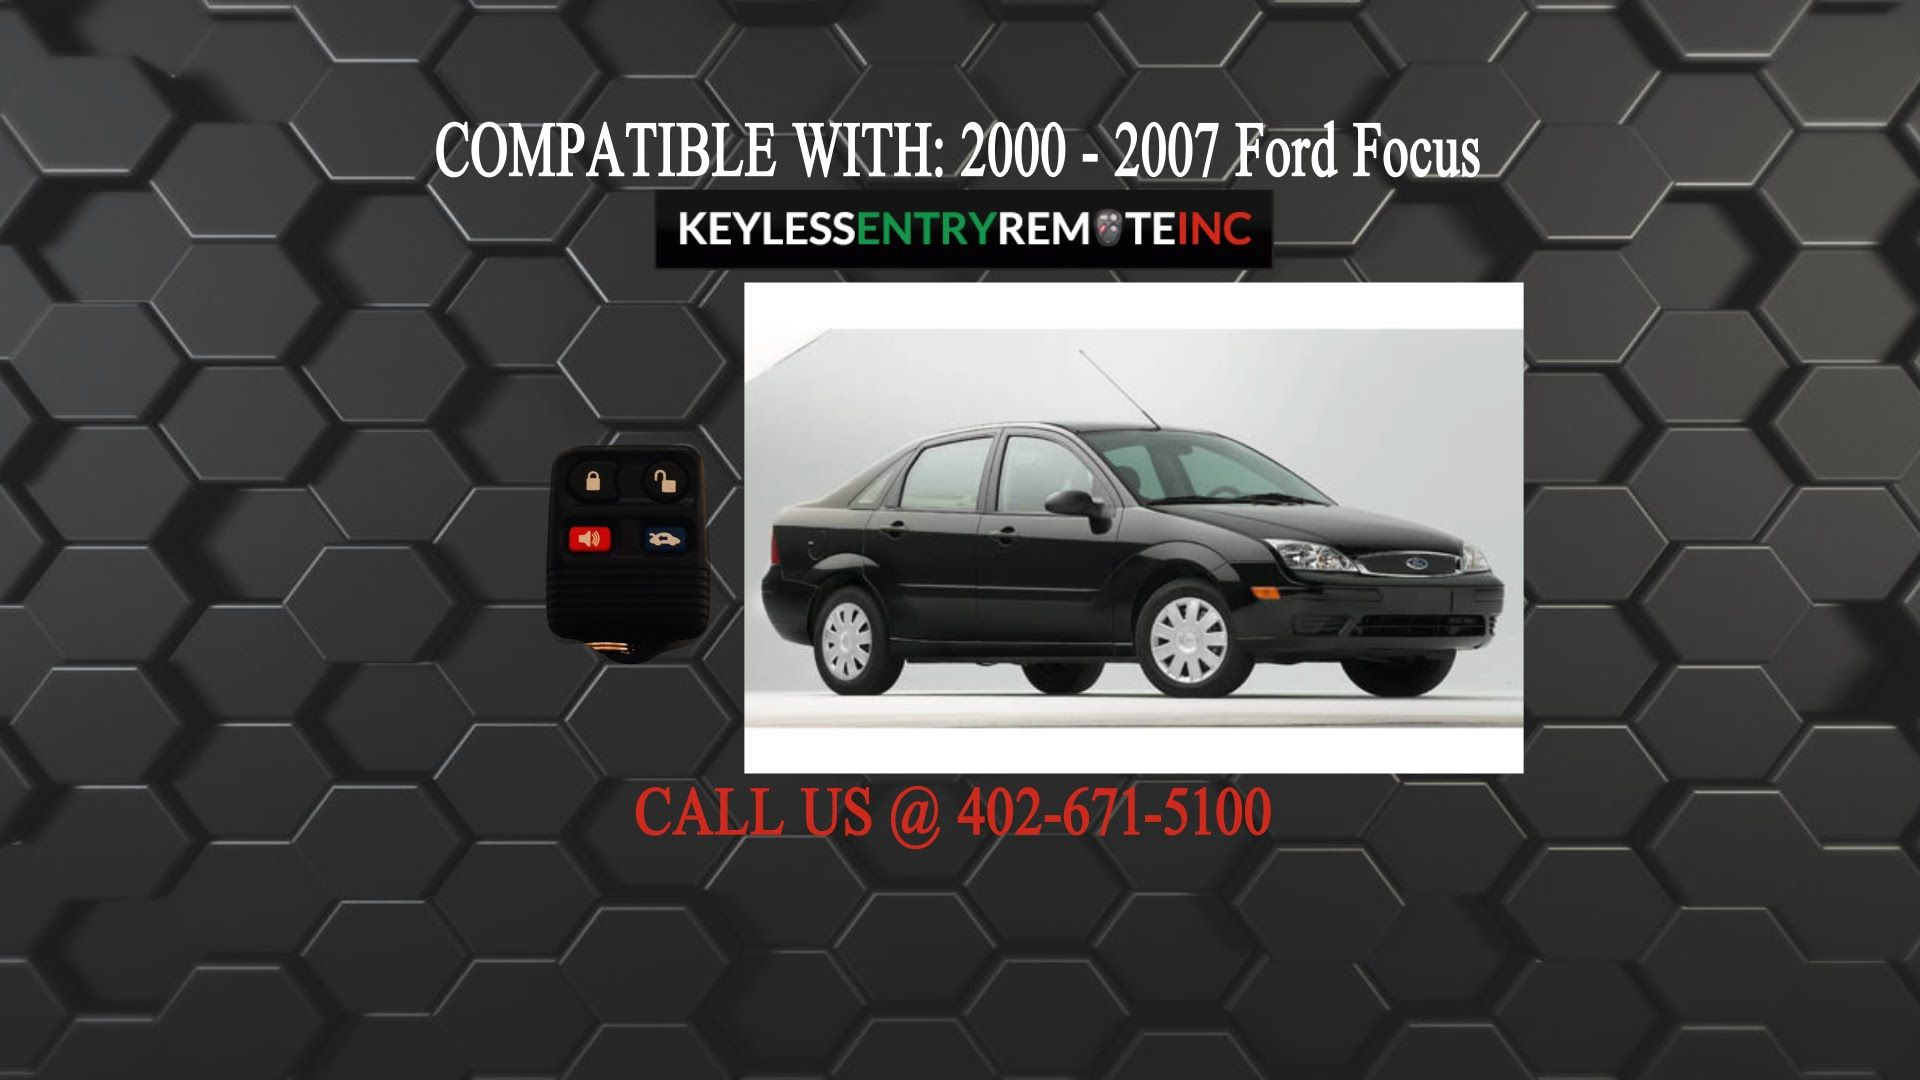 How To Replace A Ford Focus Key Fob Battery 2000 2012 Ford